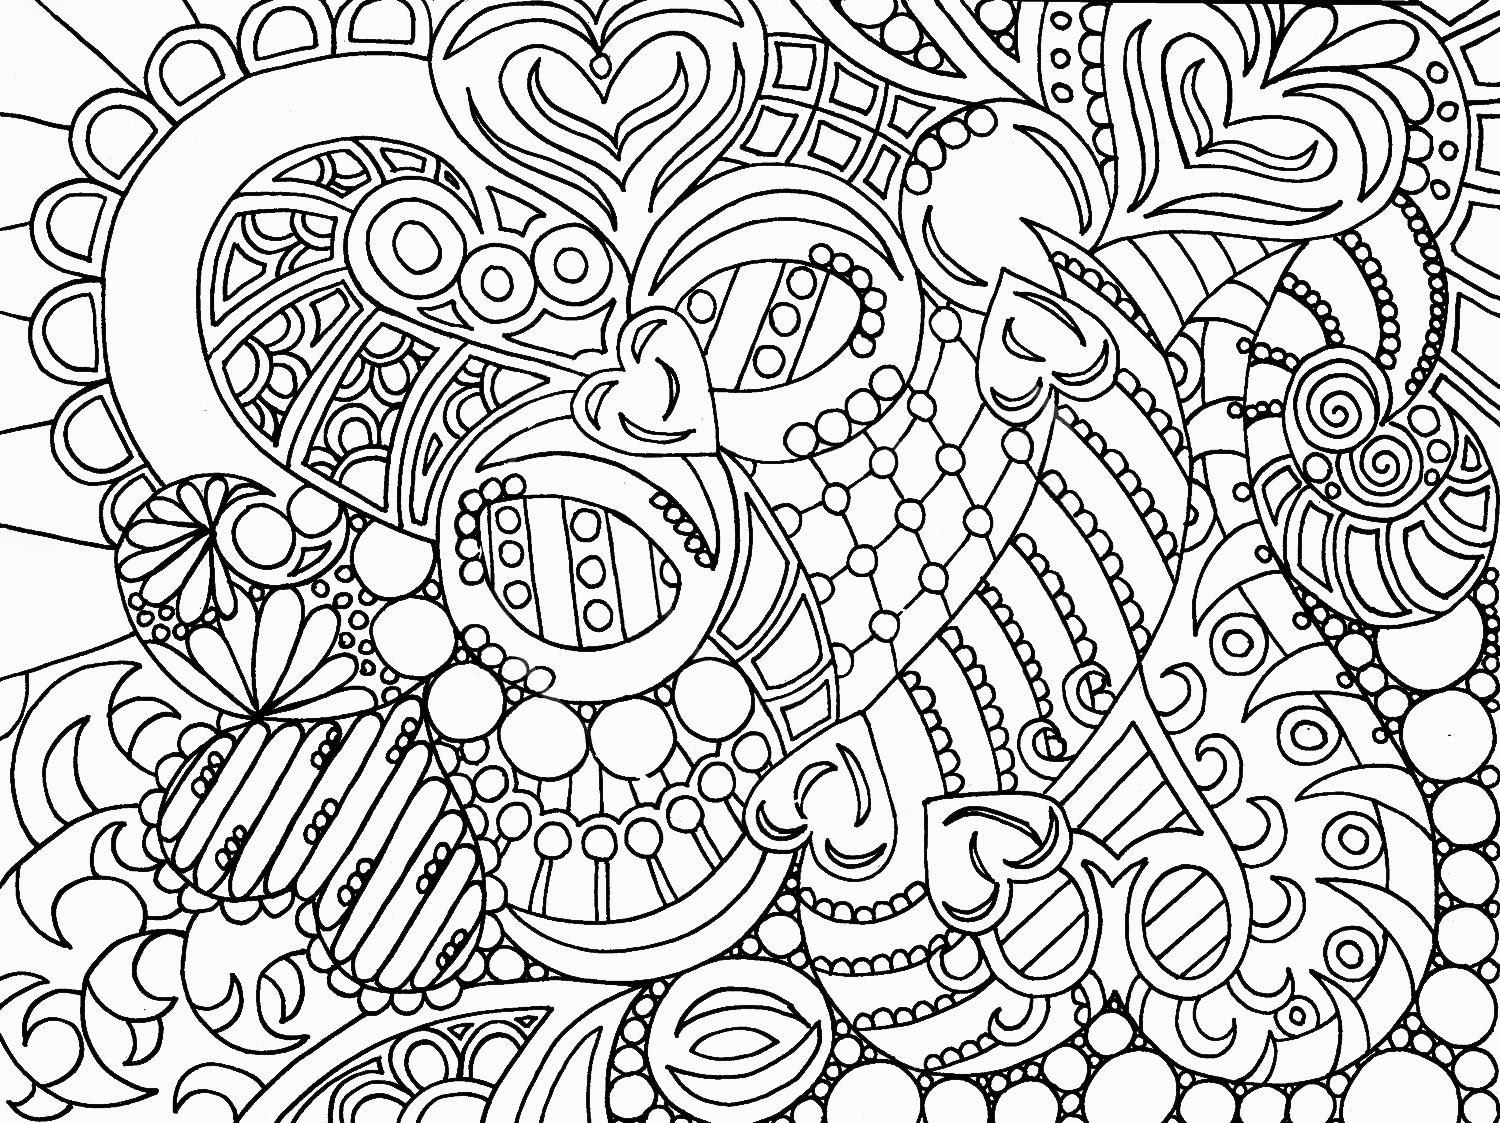 coloring pages abstract art - photo#17